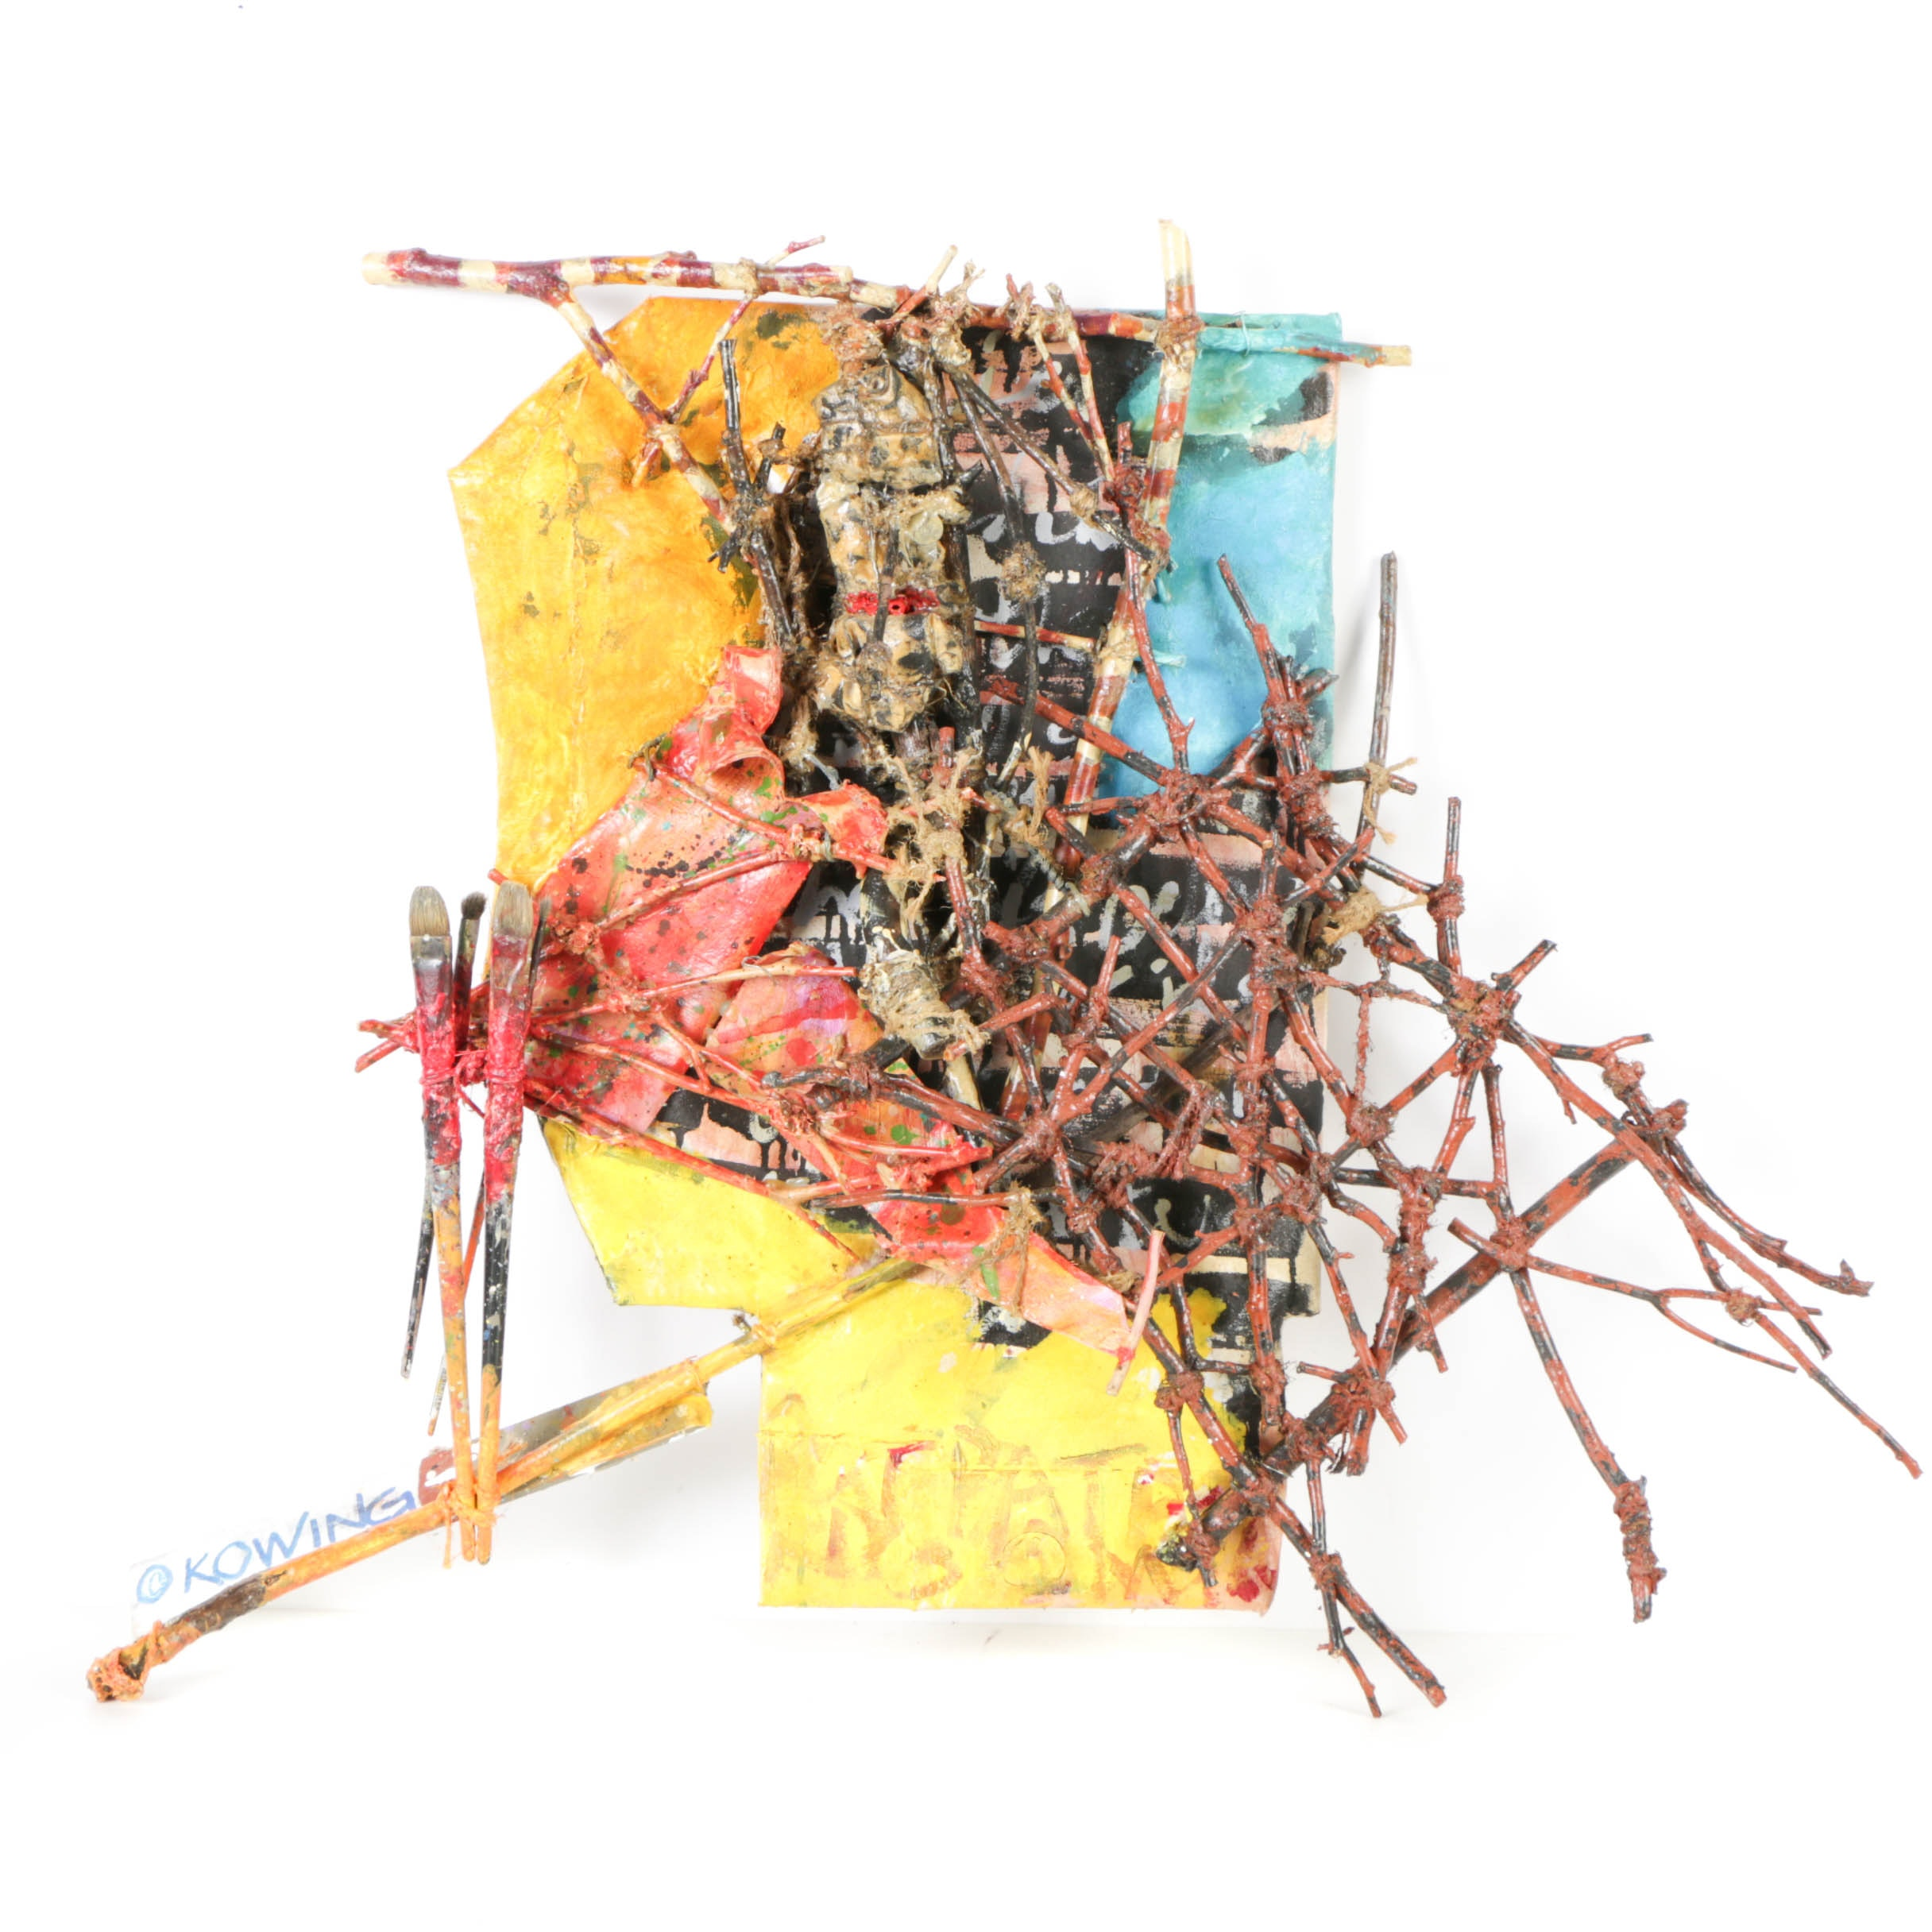 Frank Kowing Mixed Media Sculpture from Shield Series